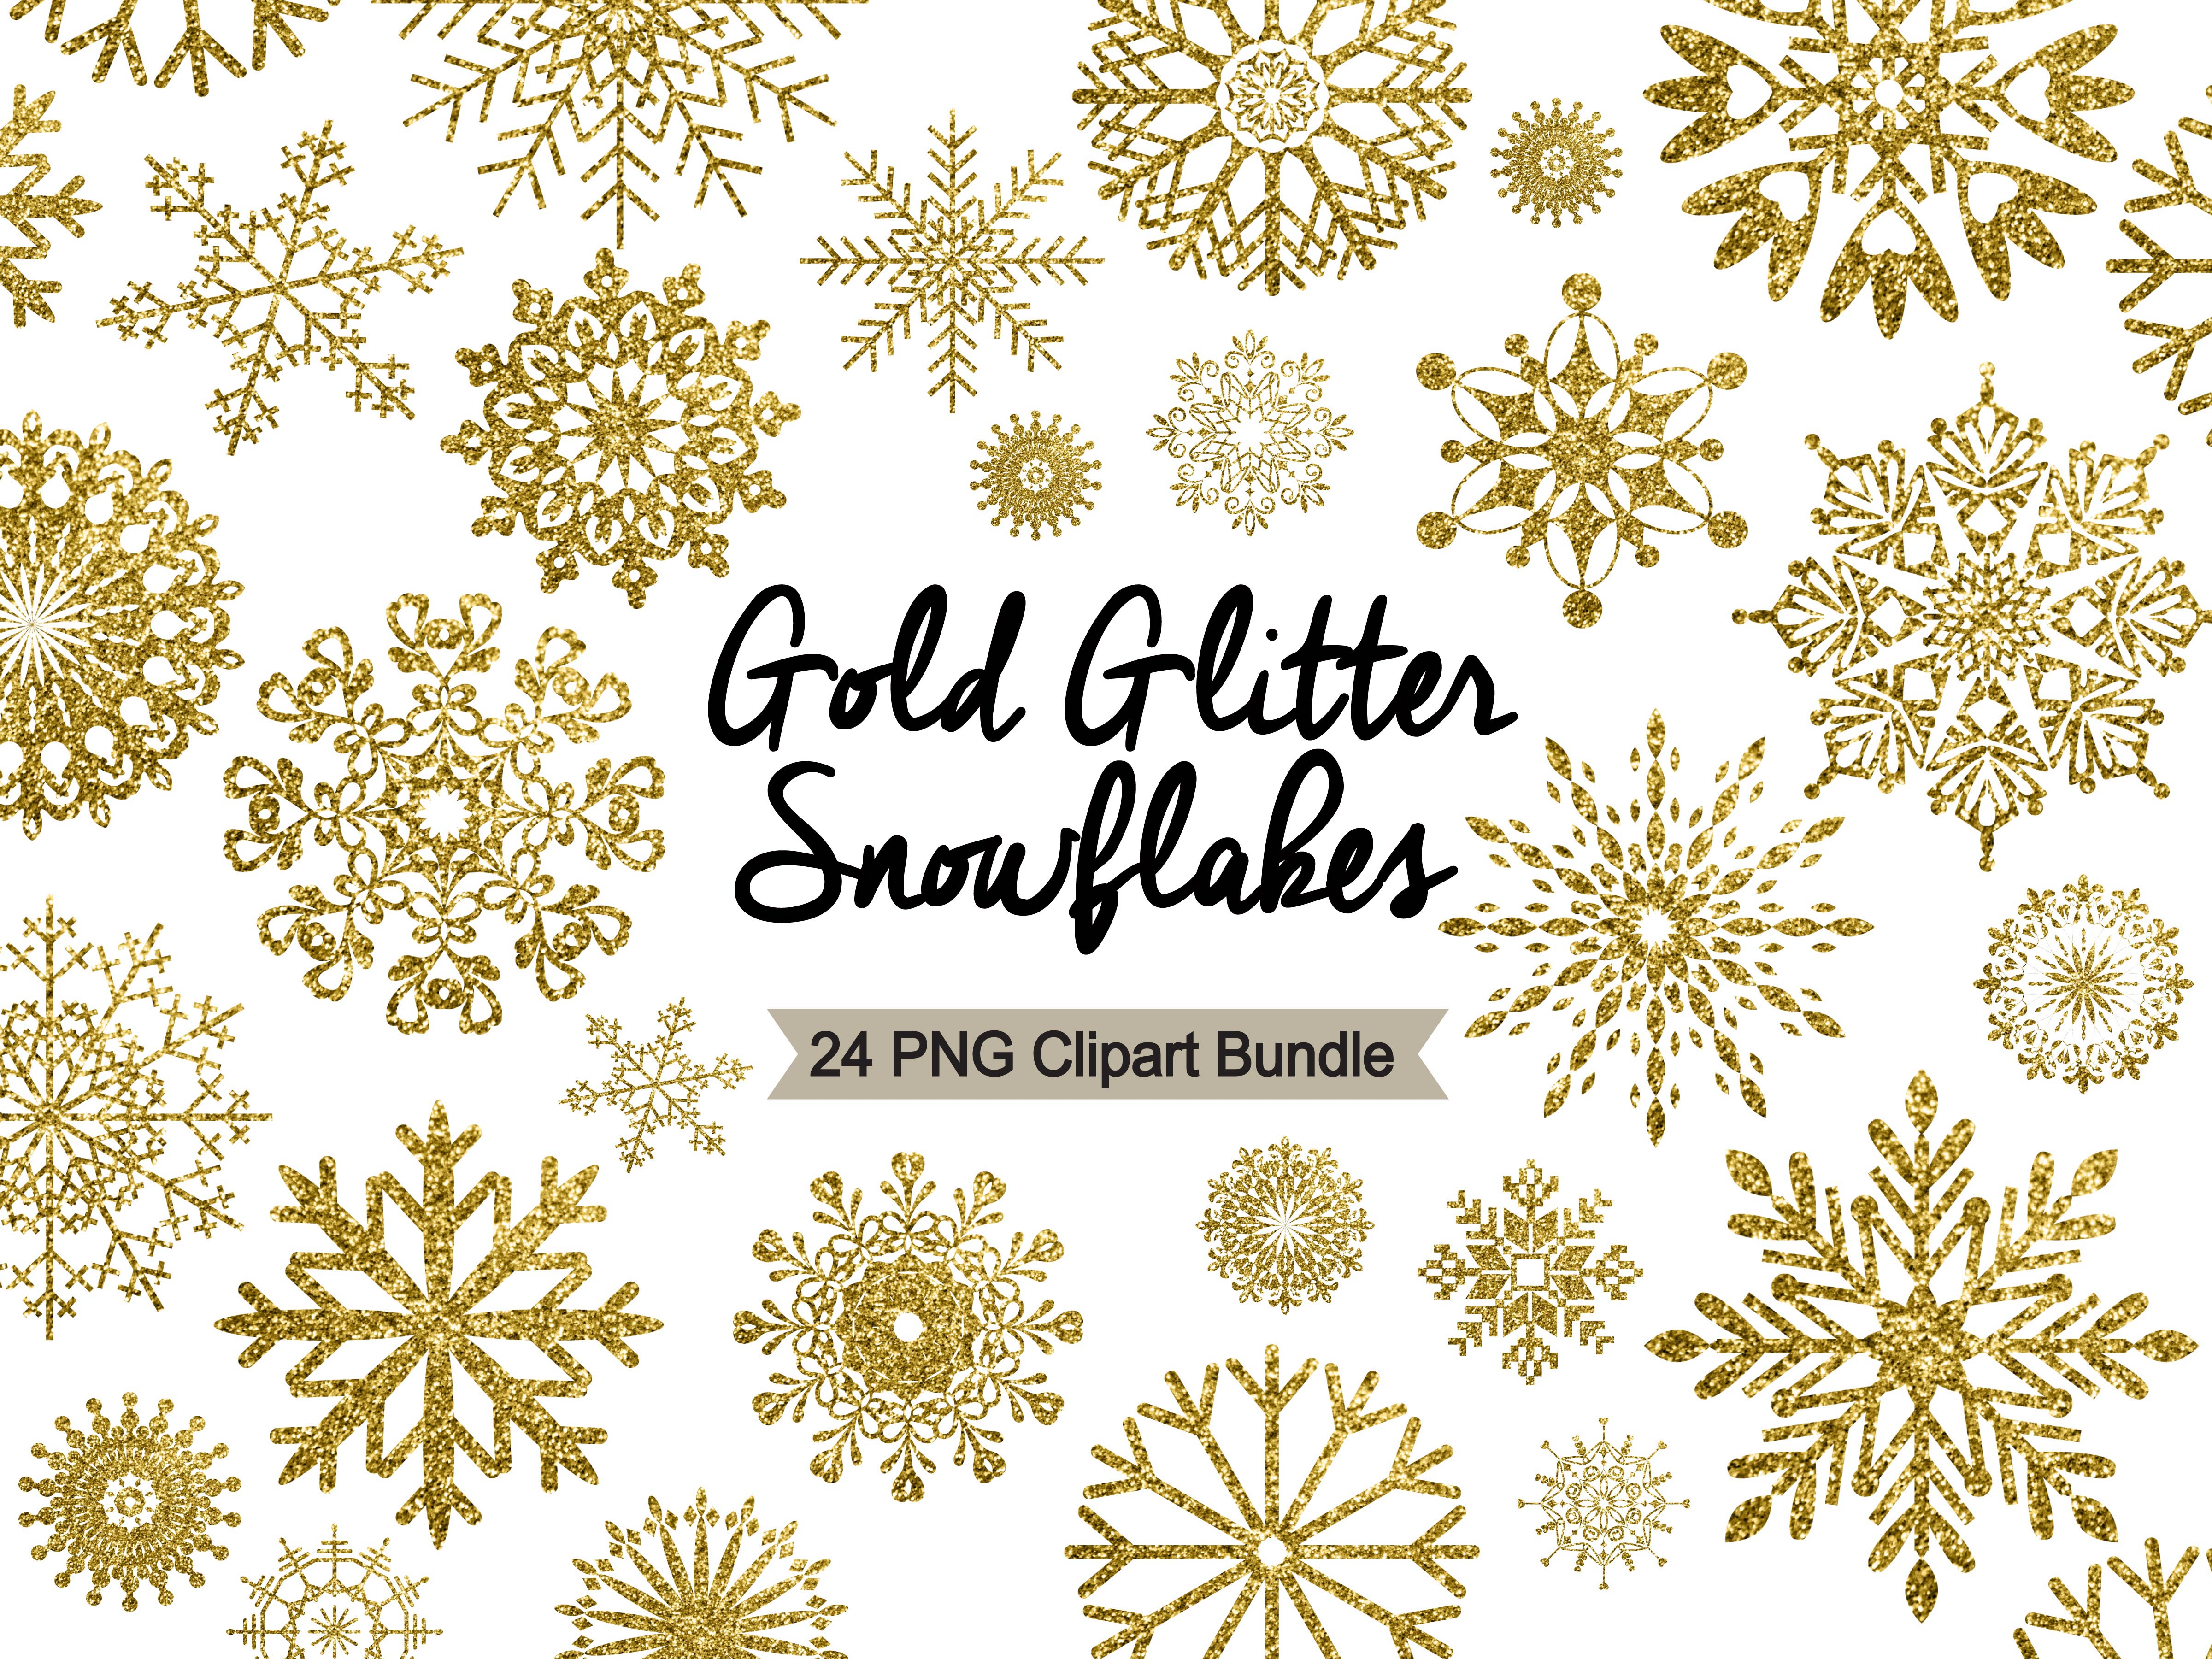 Snowflake clipart gold.